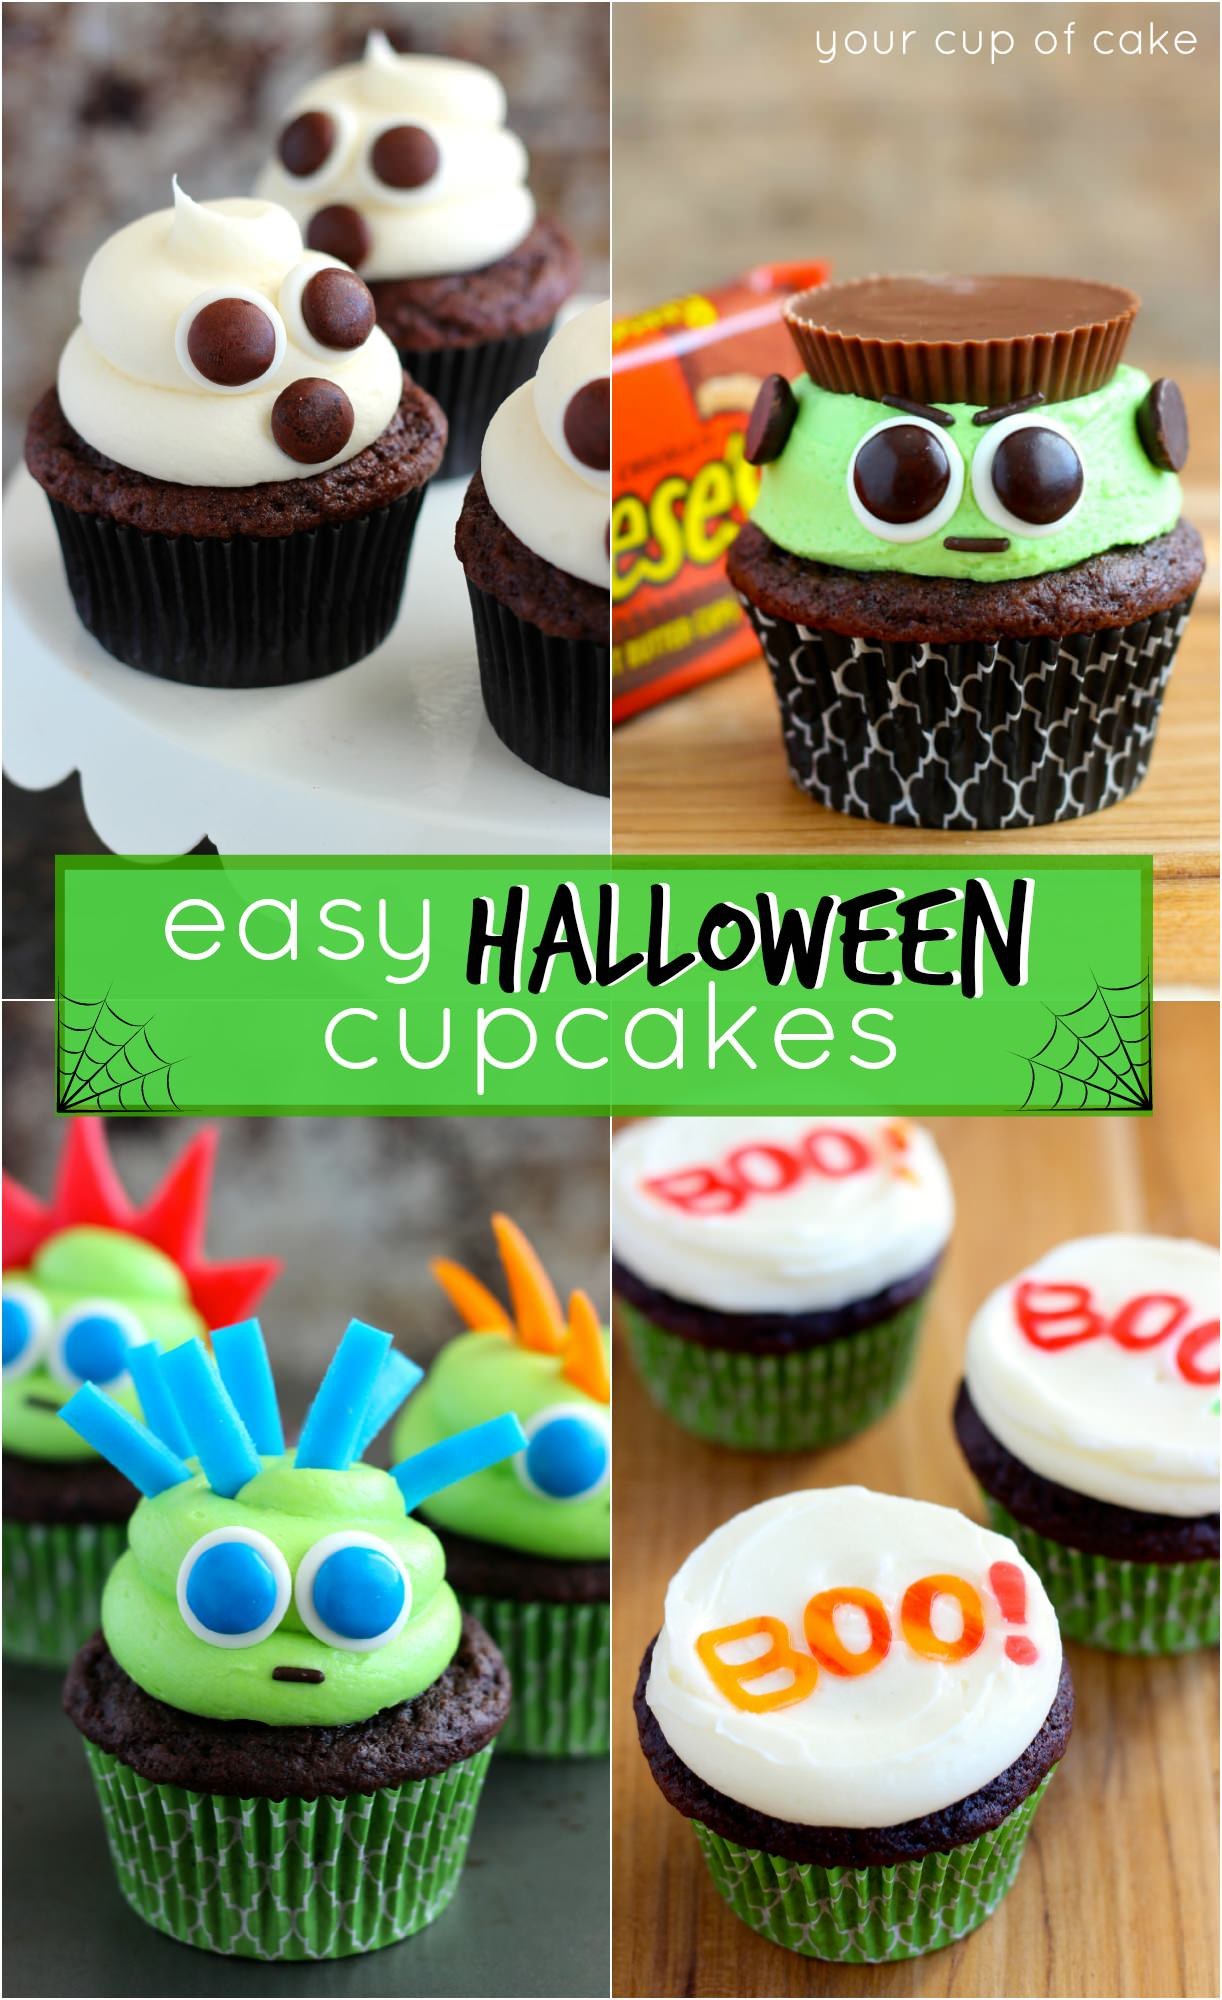 Easy Halloween Cupcake Ideas Your Cup Of Cake